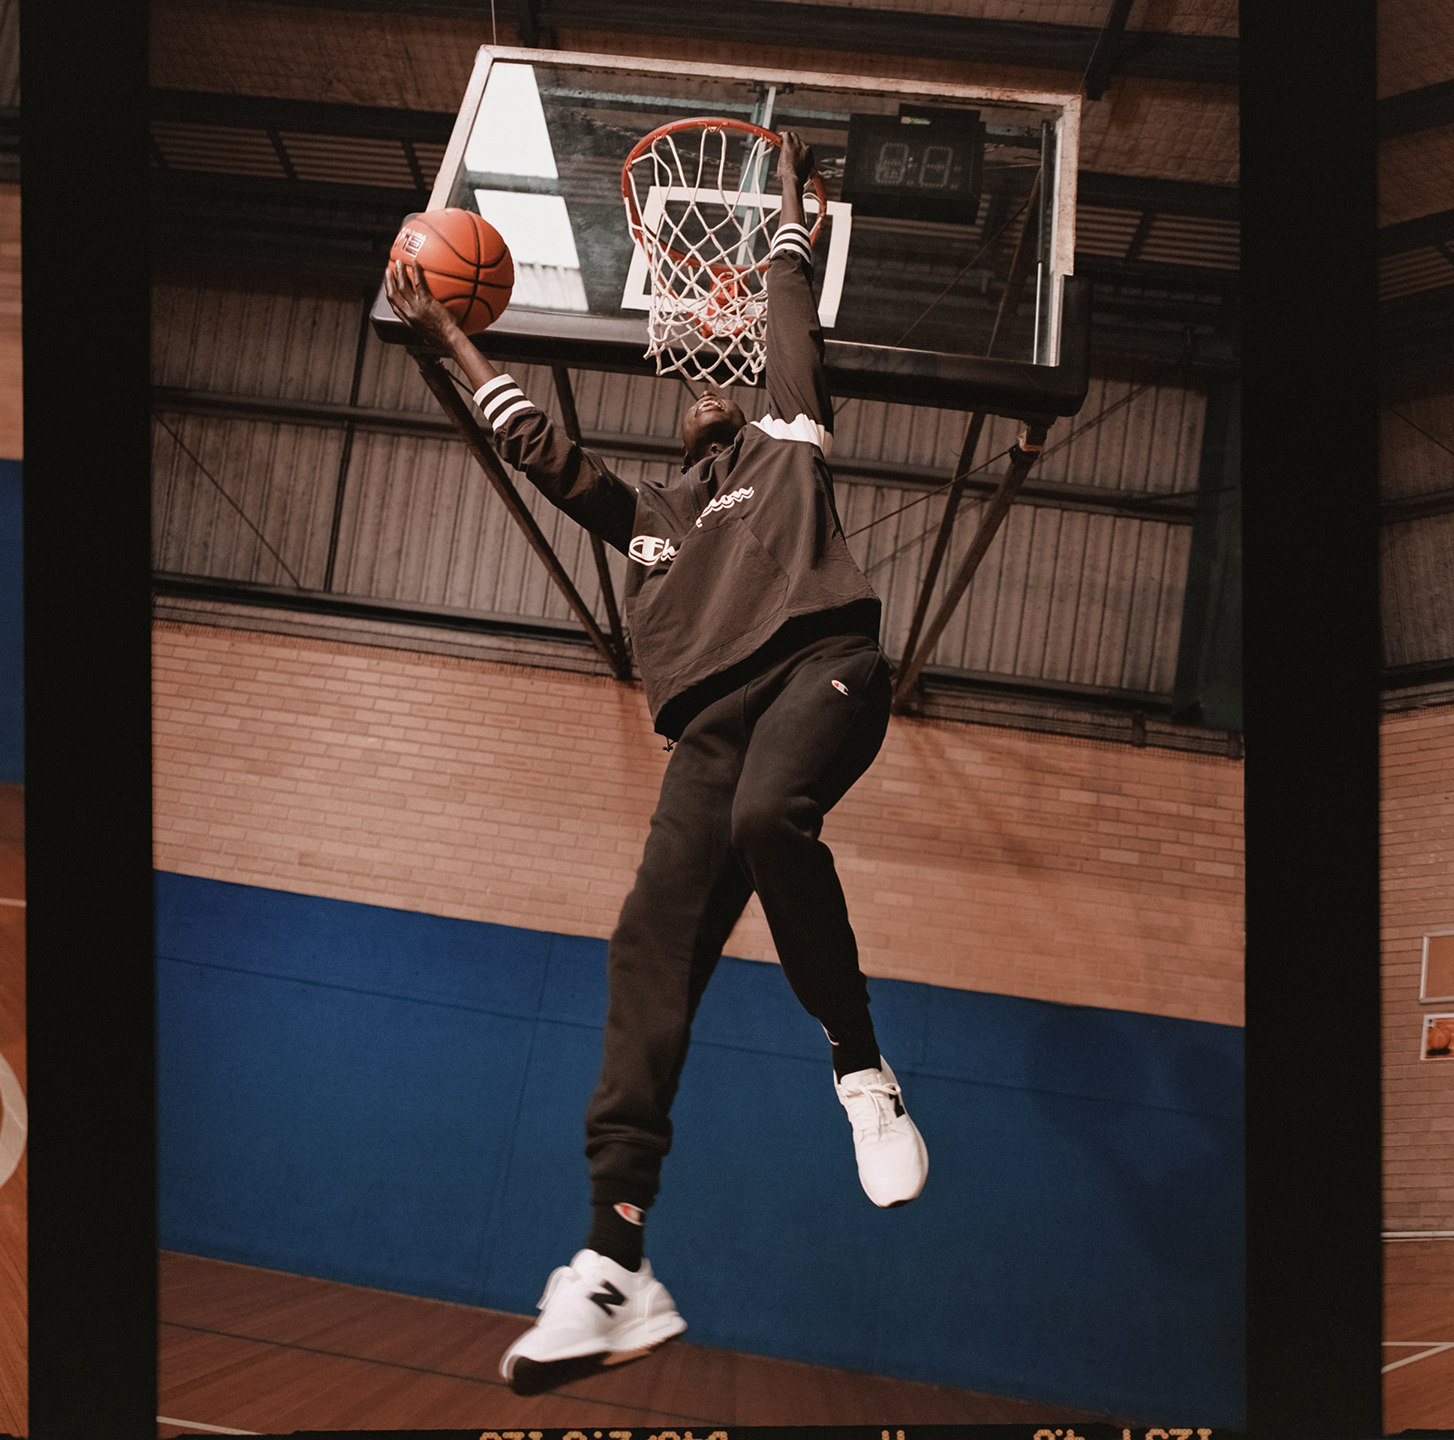 Gabriel Khamis dunks in Champion for The Iconic sport campaign